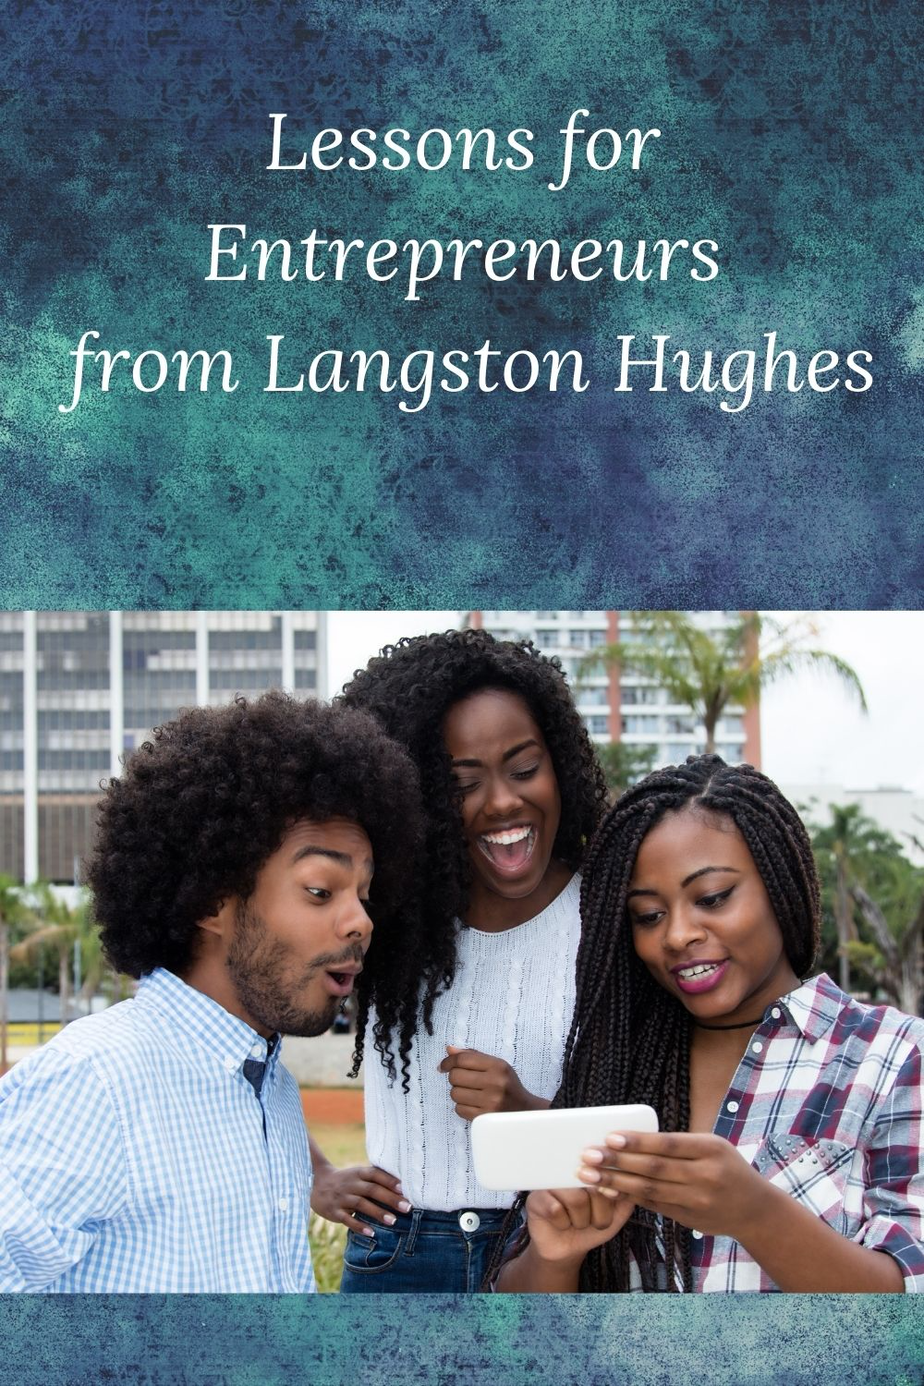 "Picture of 3 African American People and the words "" Lessons for Entrepreneurs from Langston Hughes"""